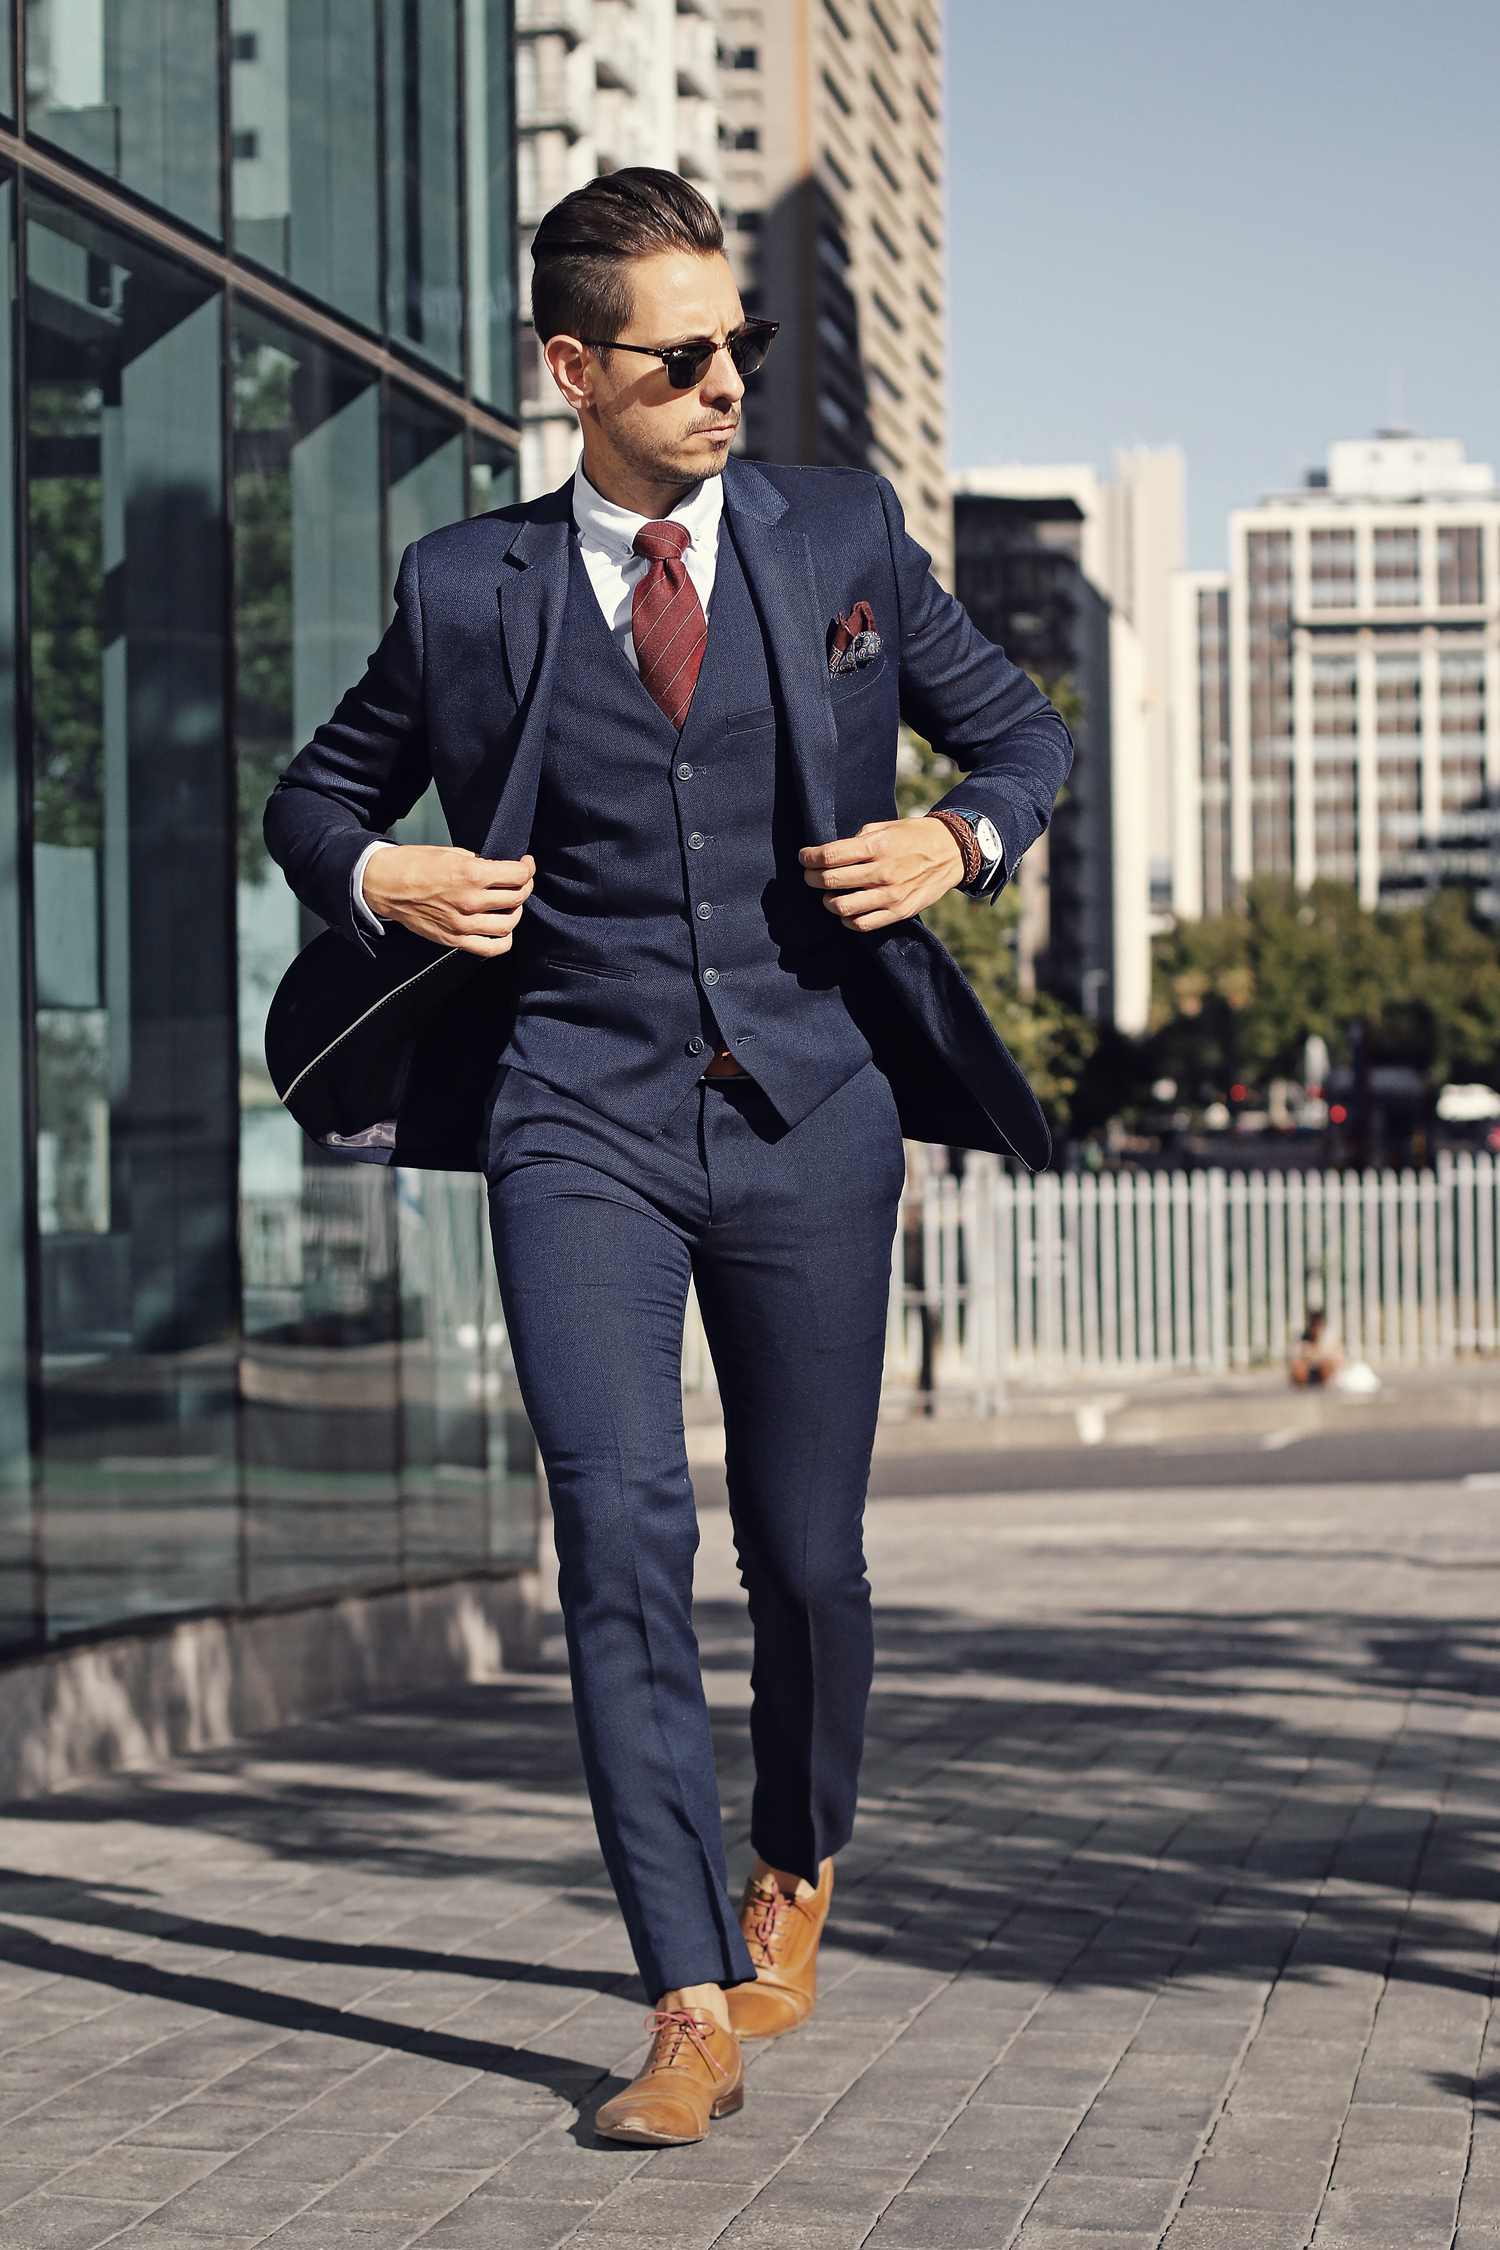 Men New Suit Blazer Jacket Personality Printed Slim Fit Homme Fashion Wedding Party Stage Costumes Best Man Dress Blazer Demand Exceeding Supply Men's Clothing